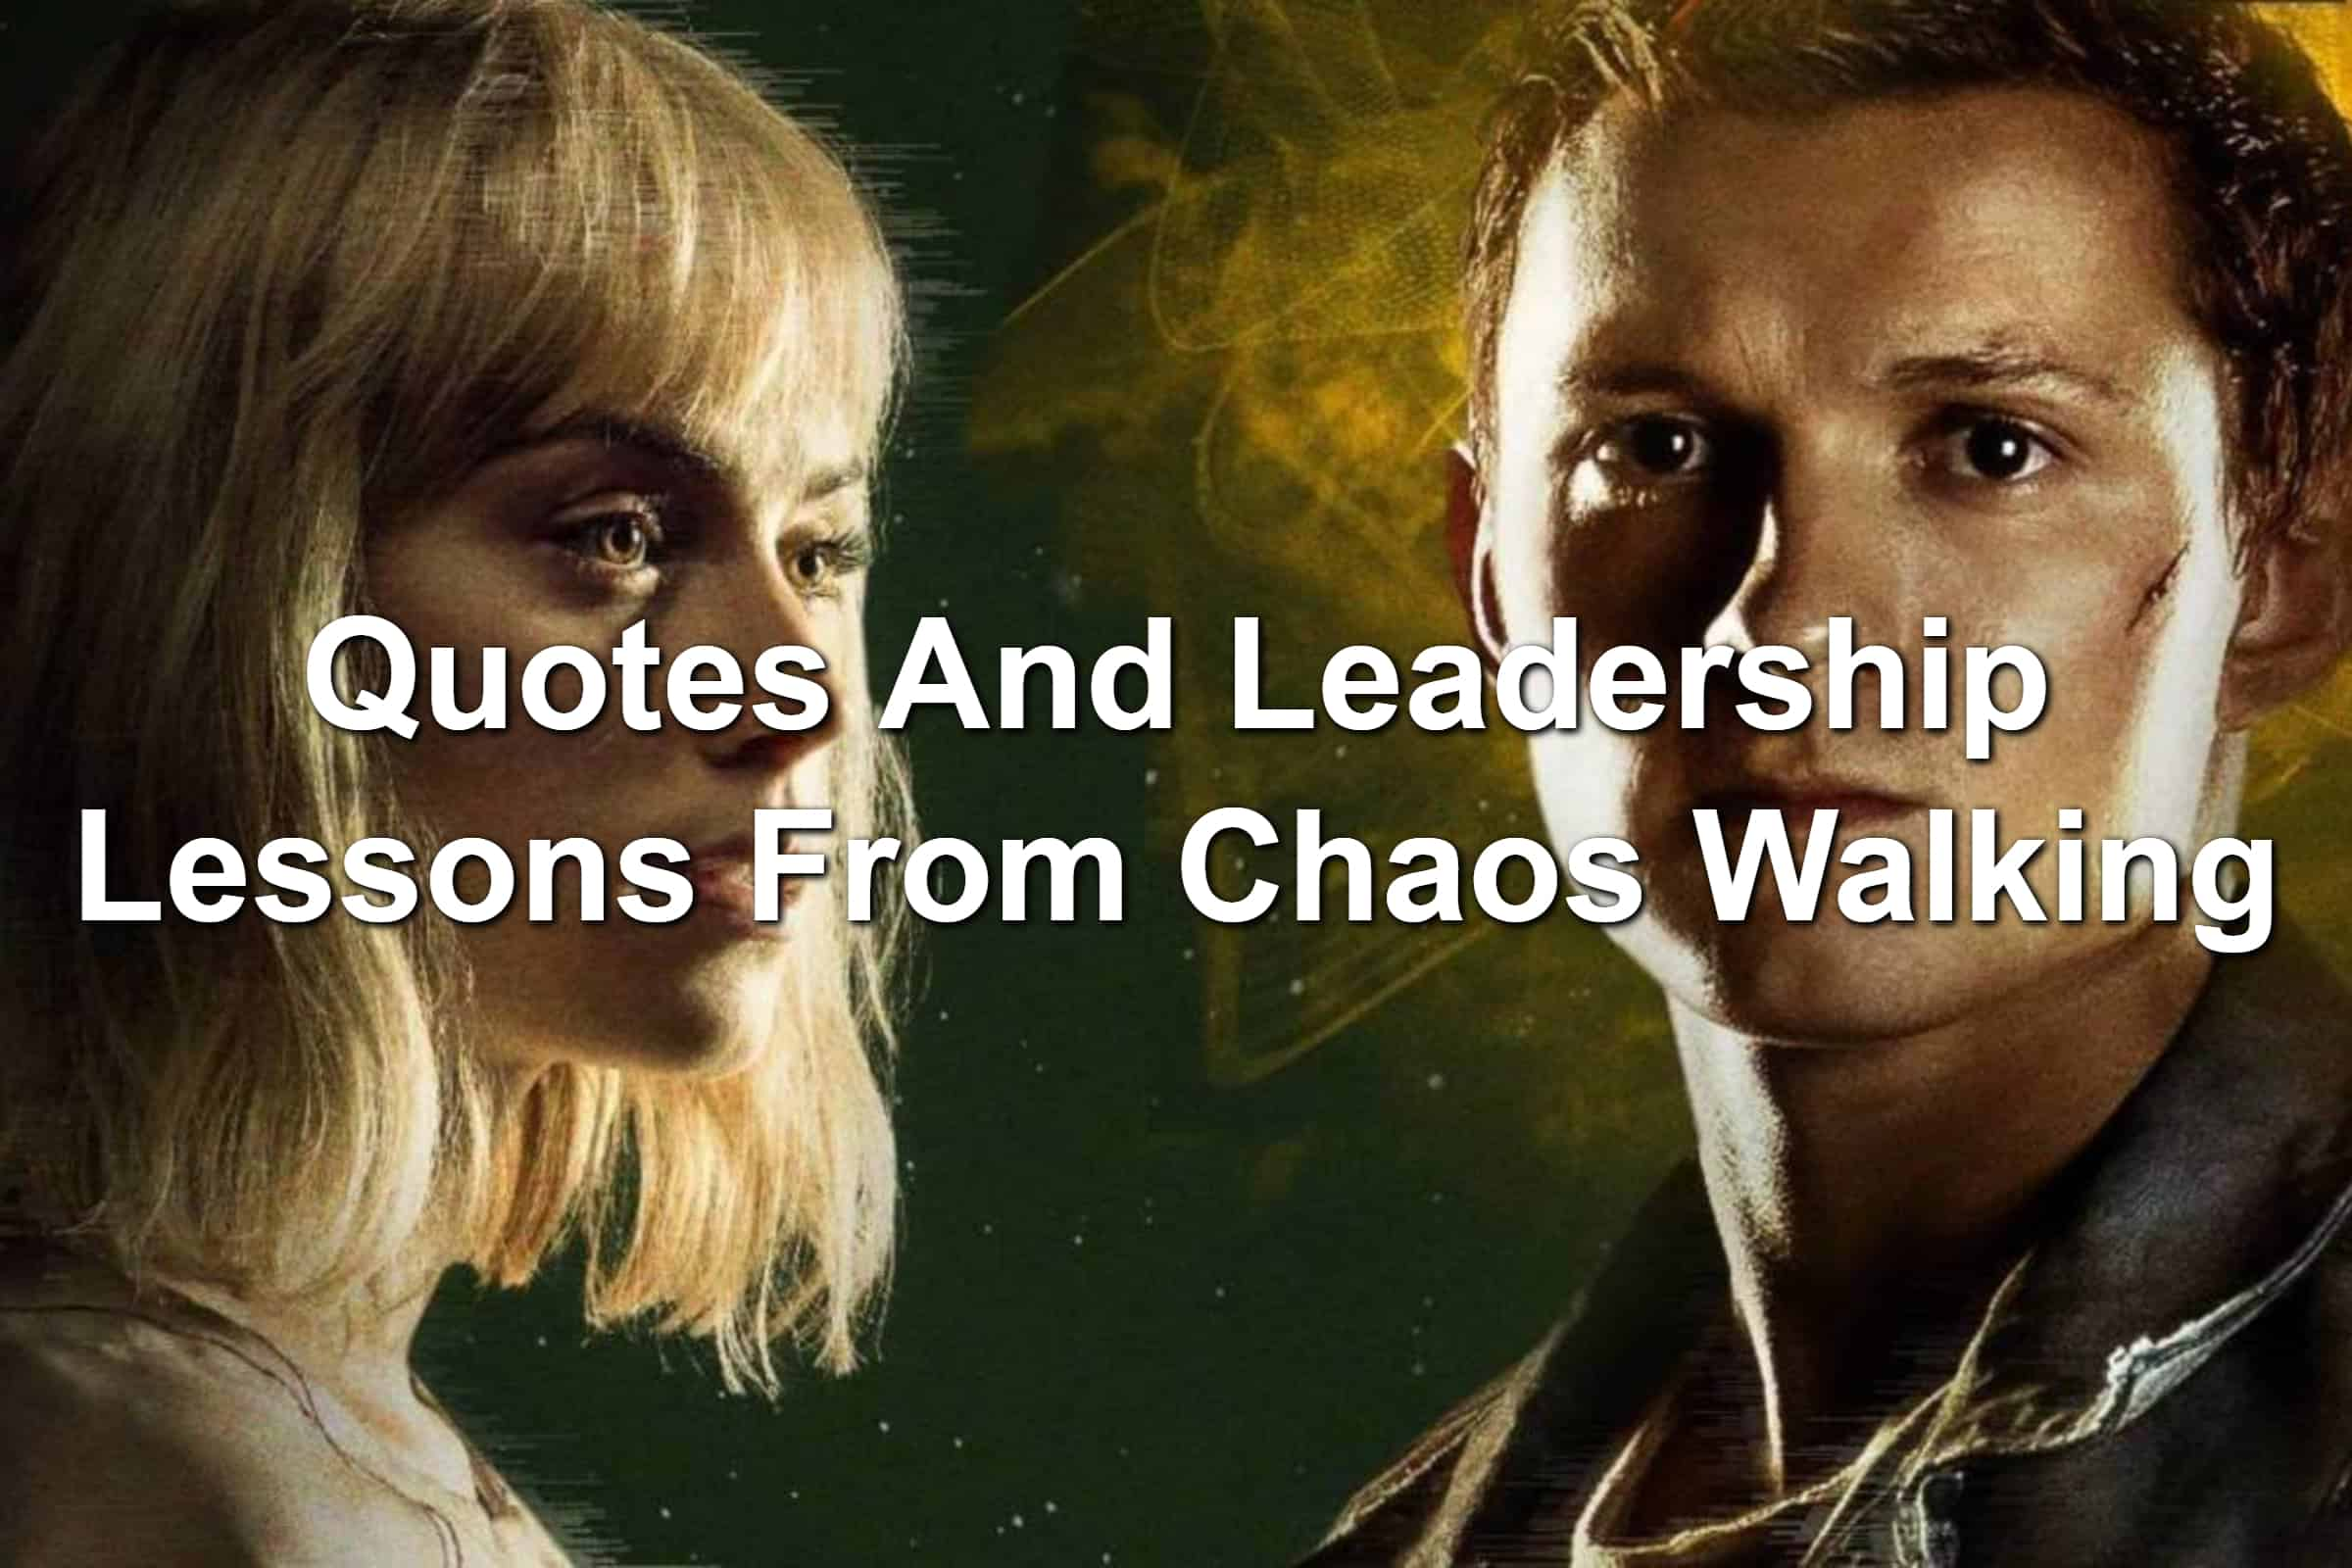 Movie poster from Chaos Walking featuring Daisy Ridley and Tom Holland with Quotes And Leadership Lessons From Chaos Walking overlayed